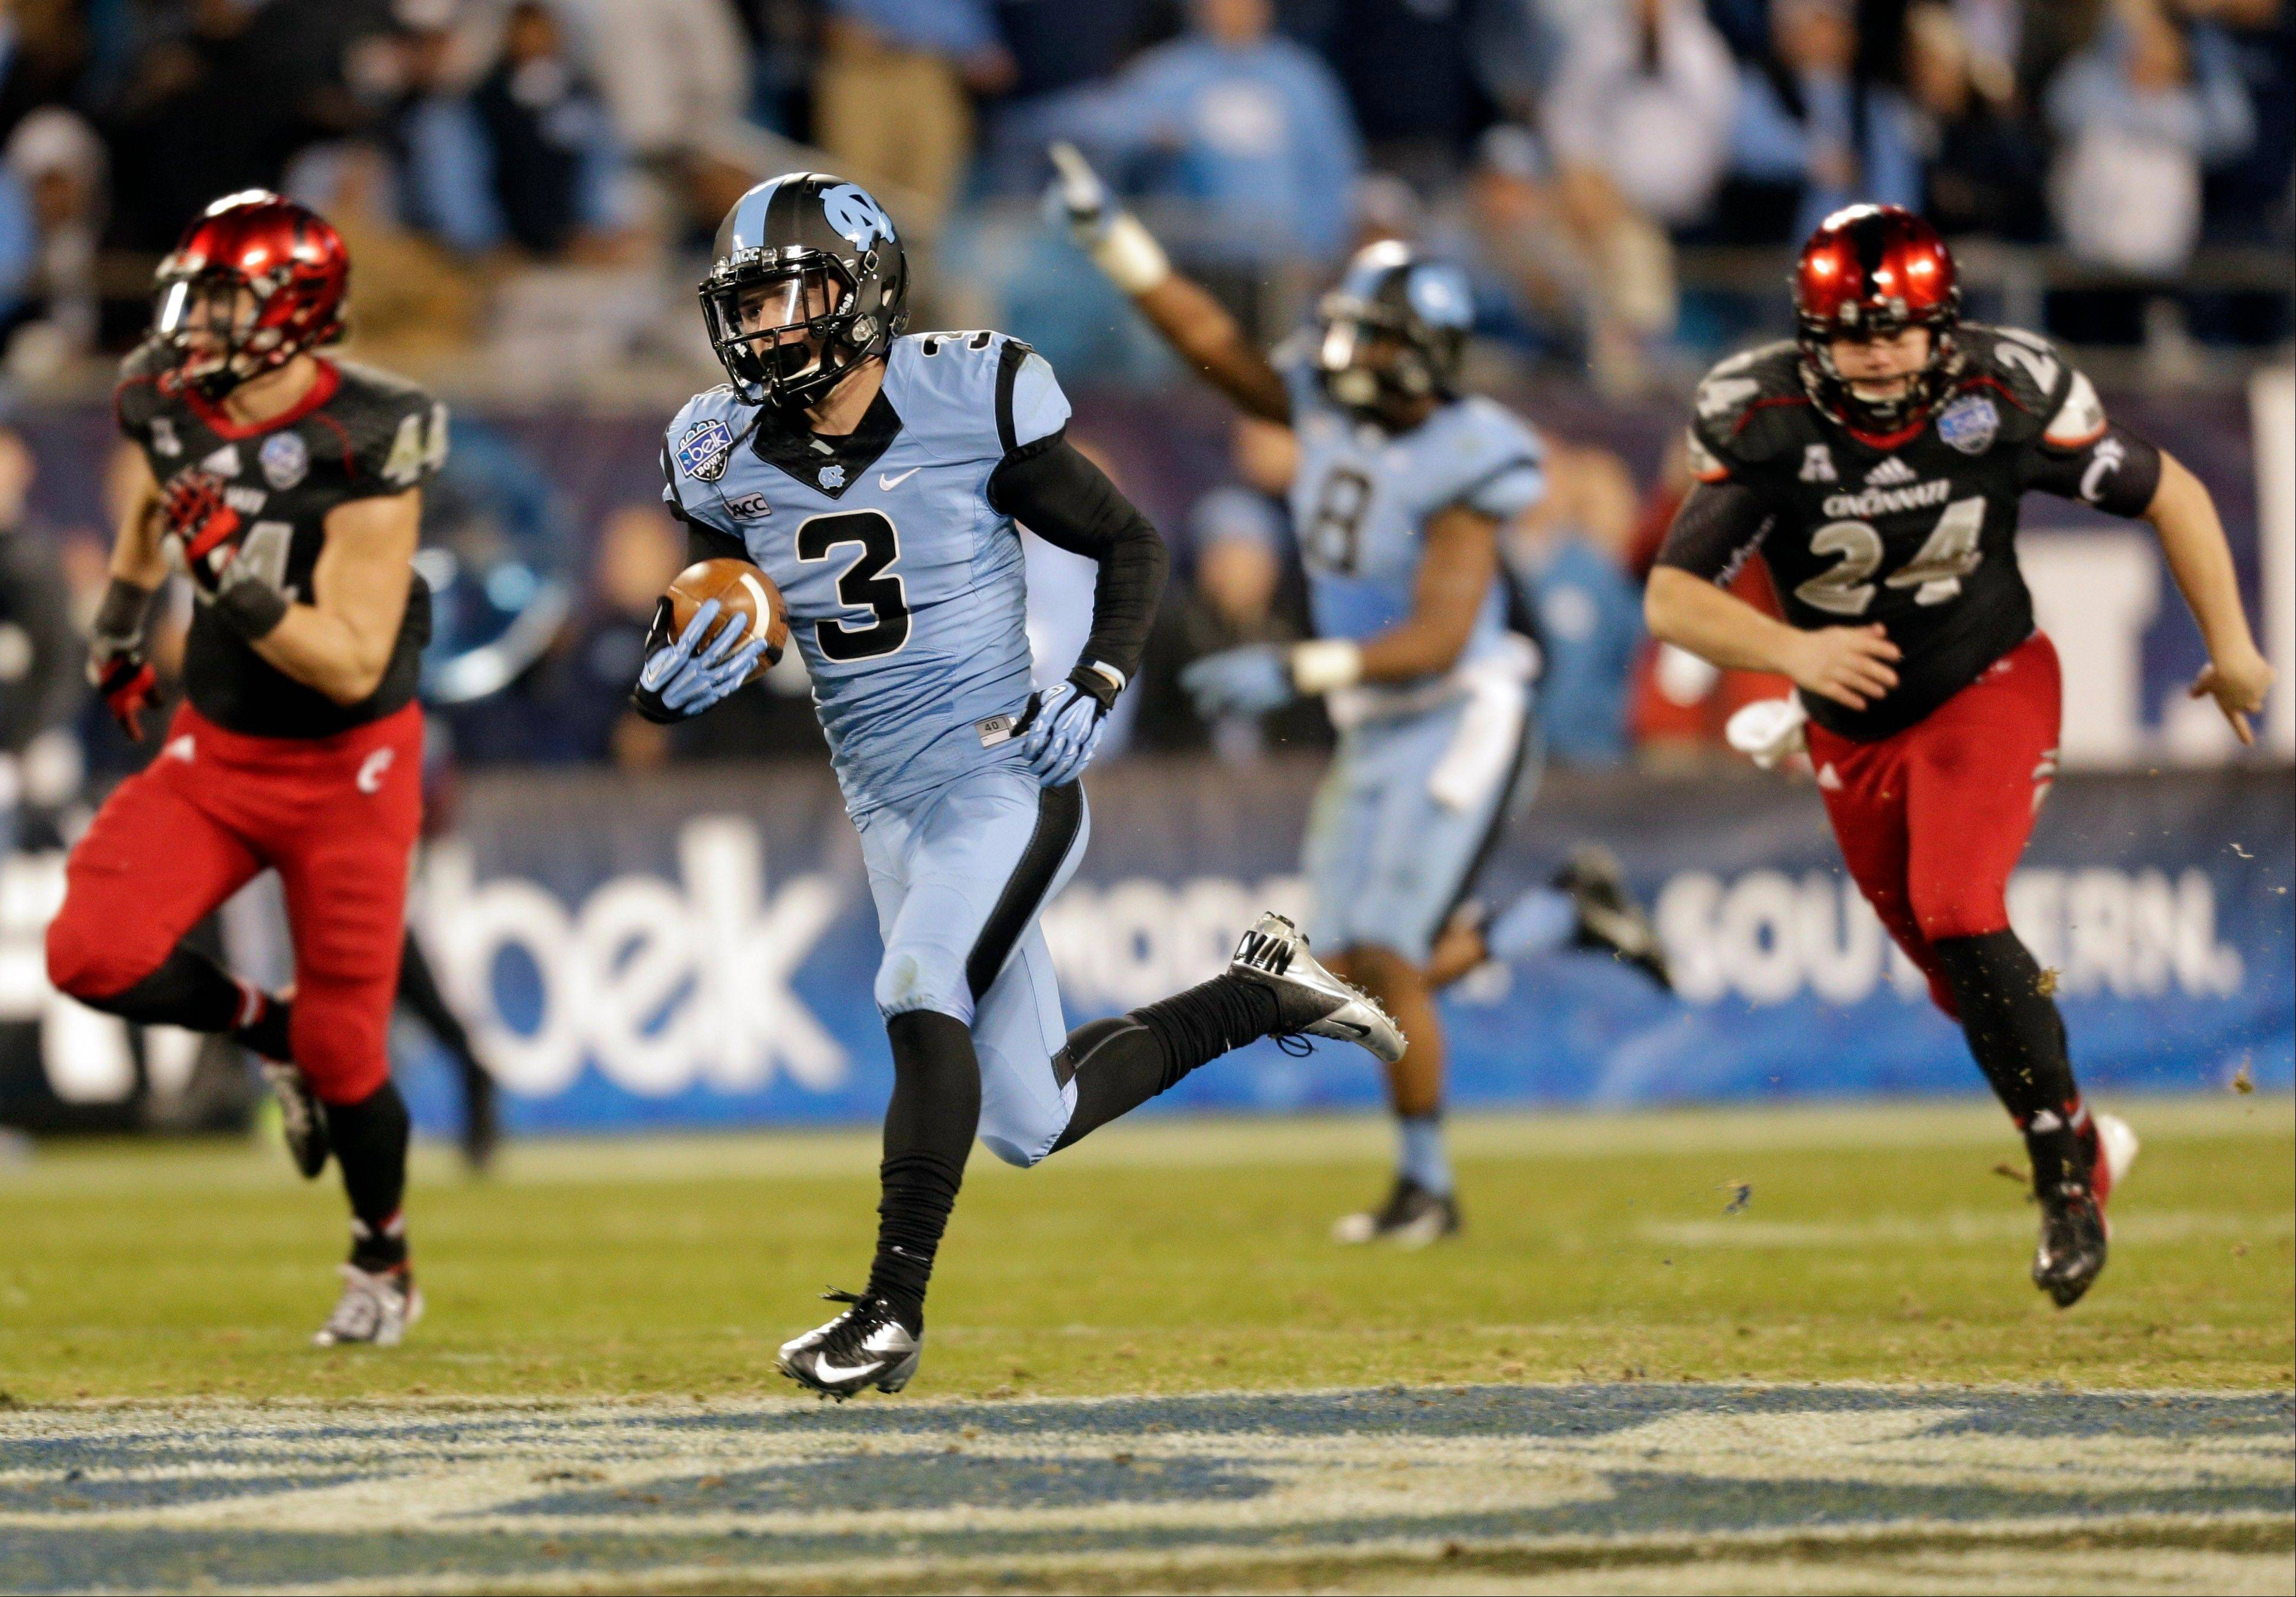 North Carolina's Ryan Switzer (3) returns a punt for a touchdown past Cincinnati's John Lloyd (24) and Corey Mason (44) during the second half of the Belk Bowl NCAA college football game, Saturday, Dec. 28, 2013, in Charlotte, N.C.